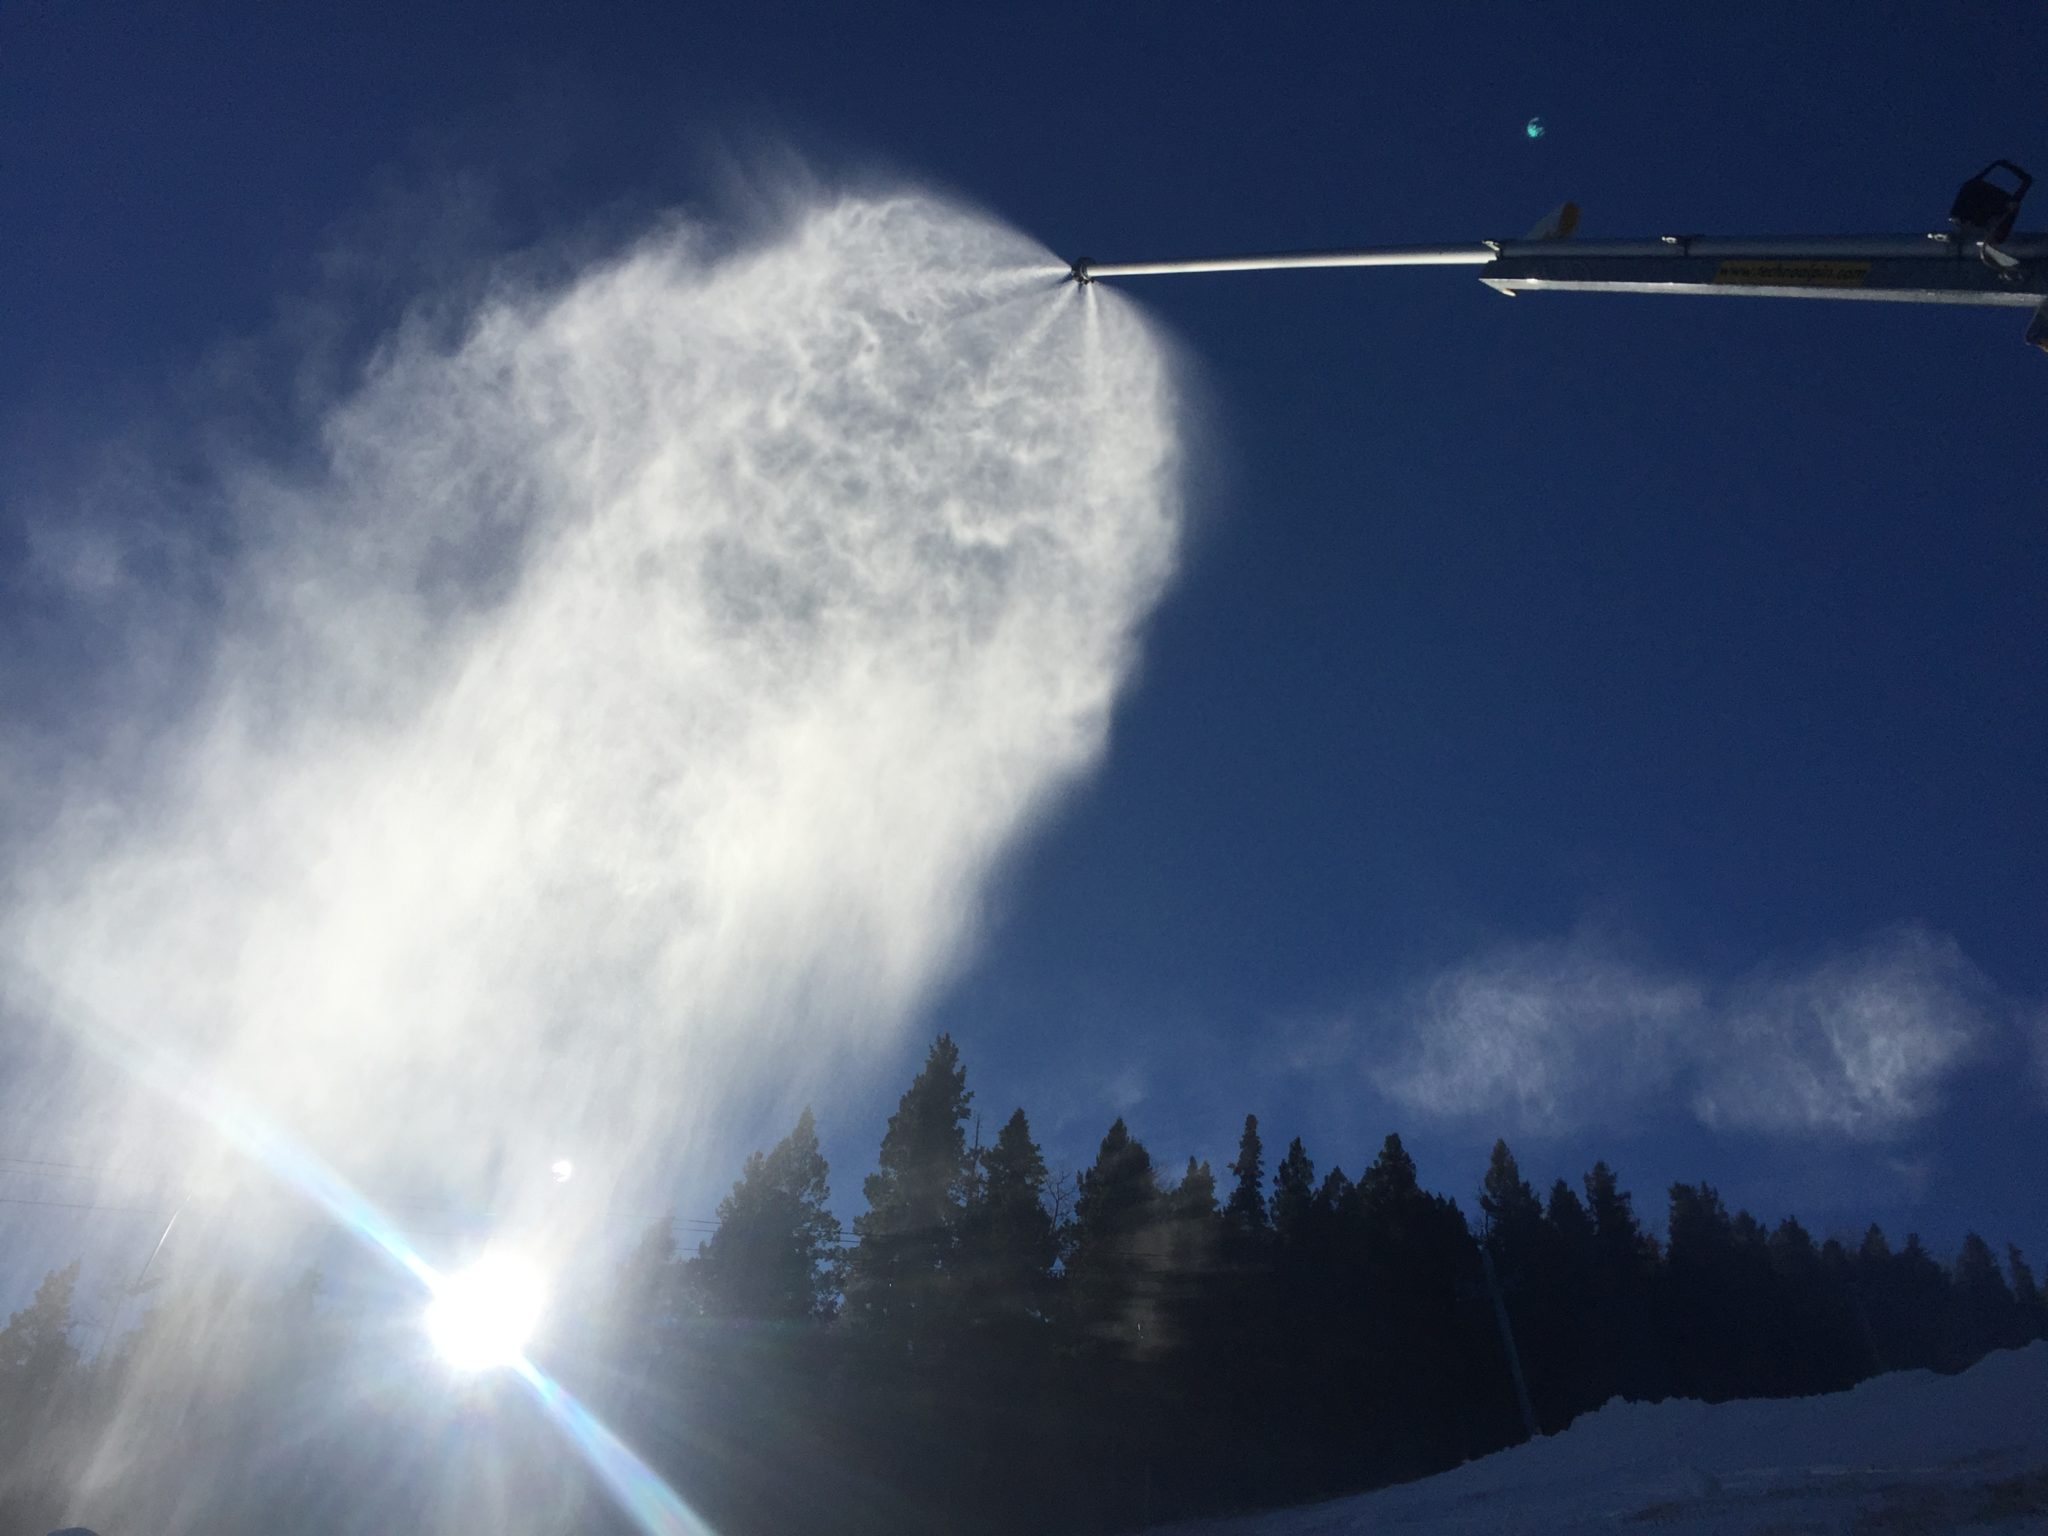 Snowmaking started on November 18